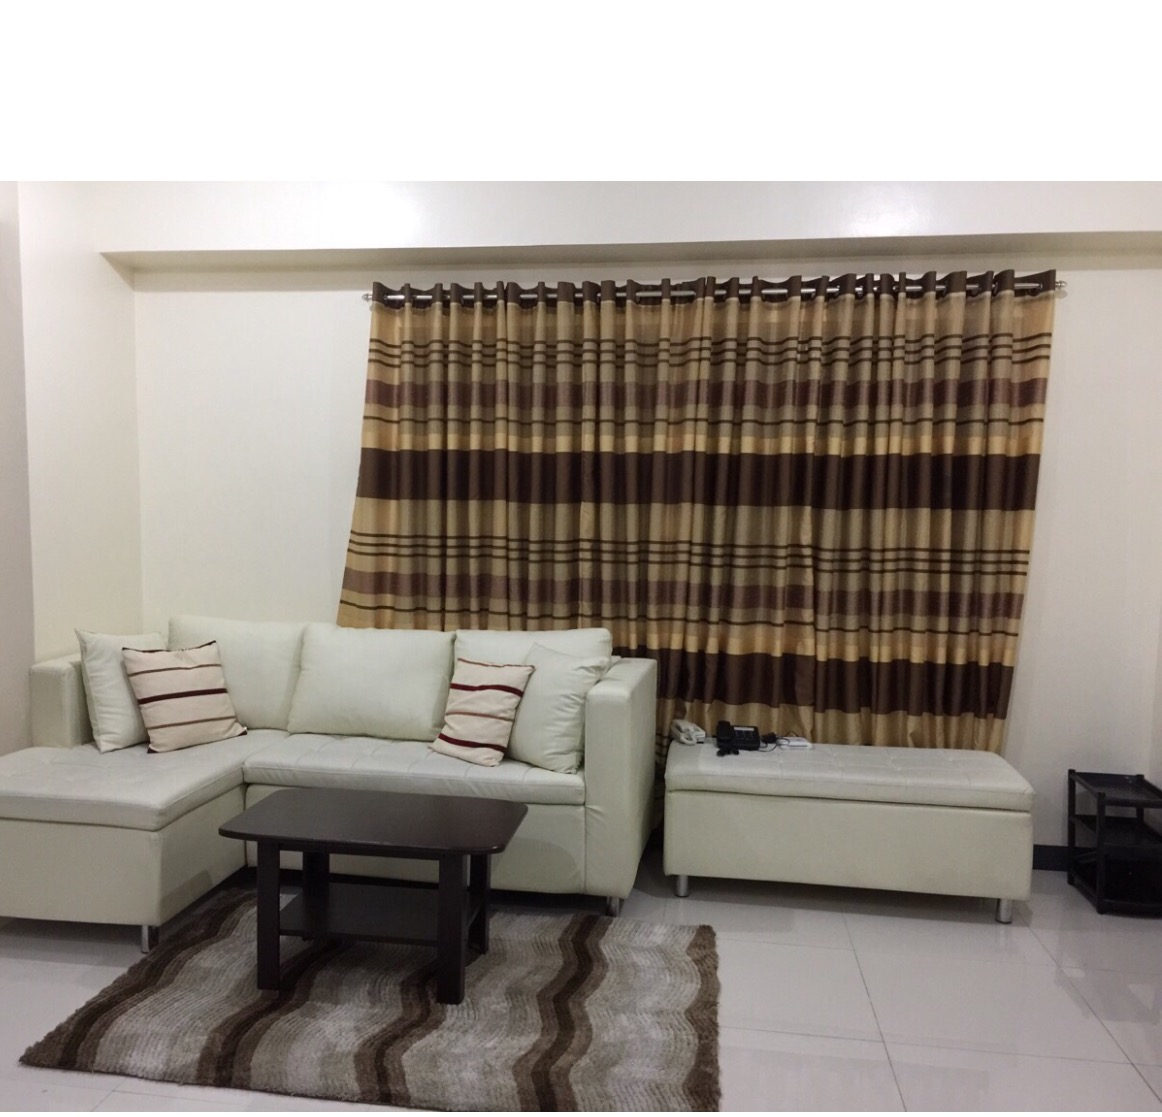 Nicely Furnished One Bedroom Condo Unit For Sale In Morgan